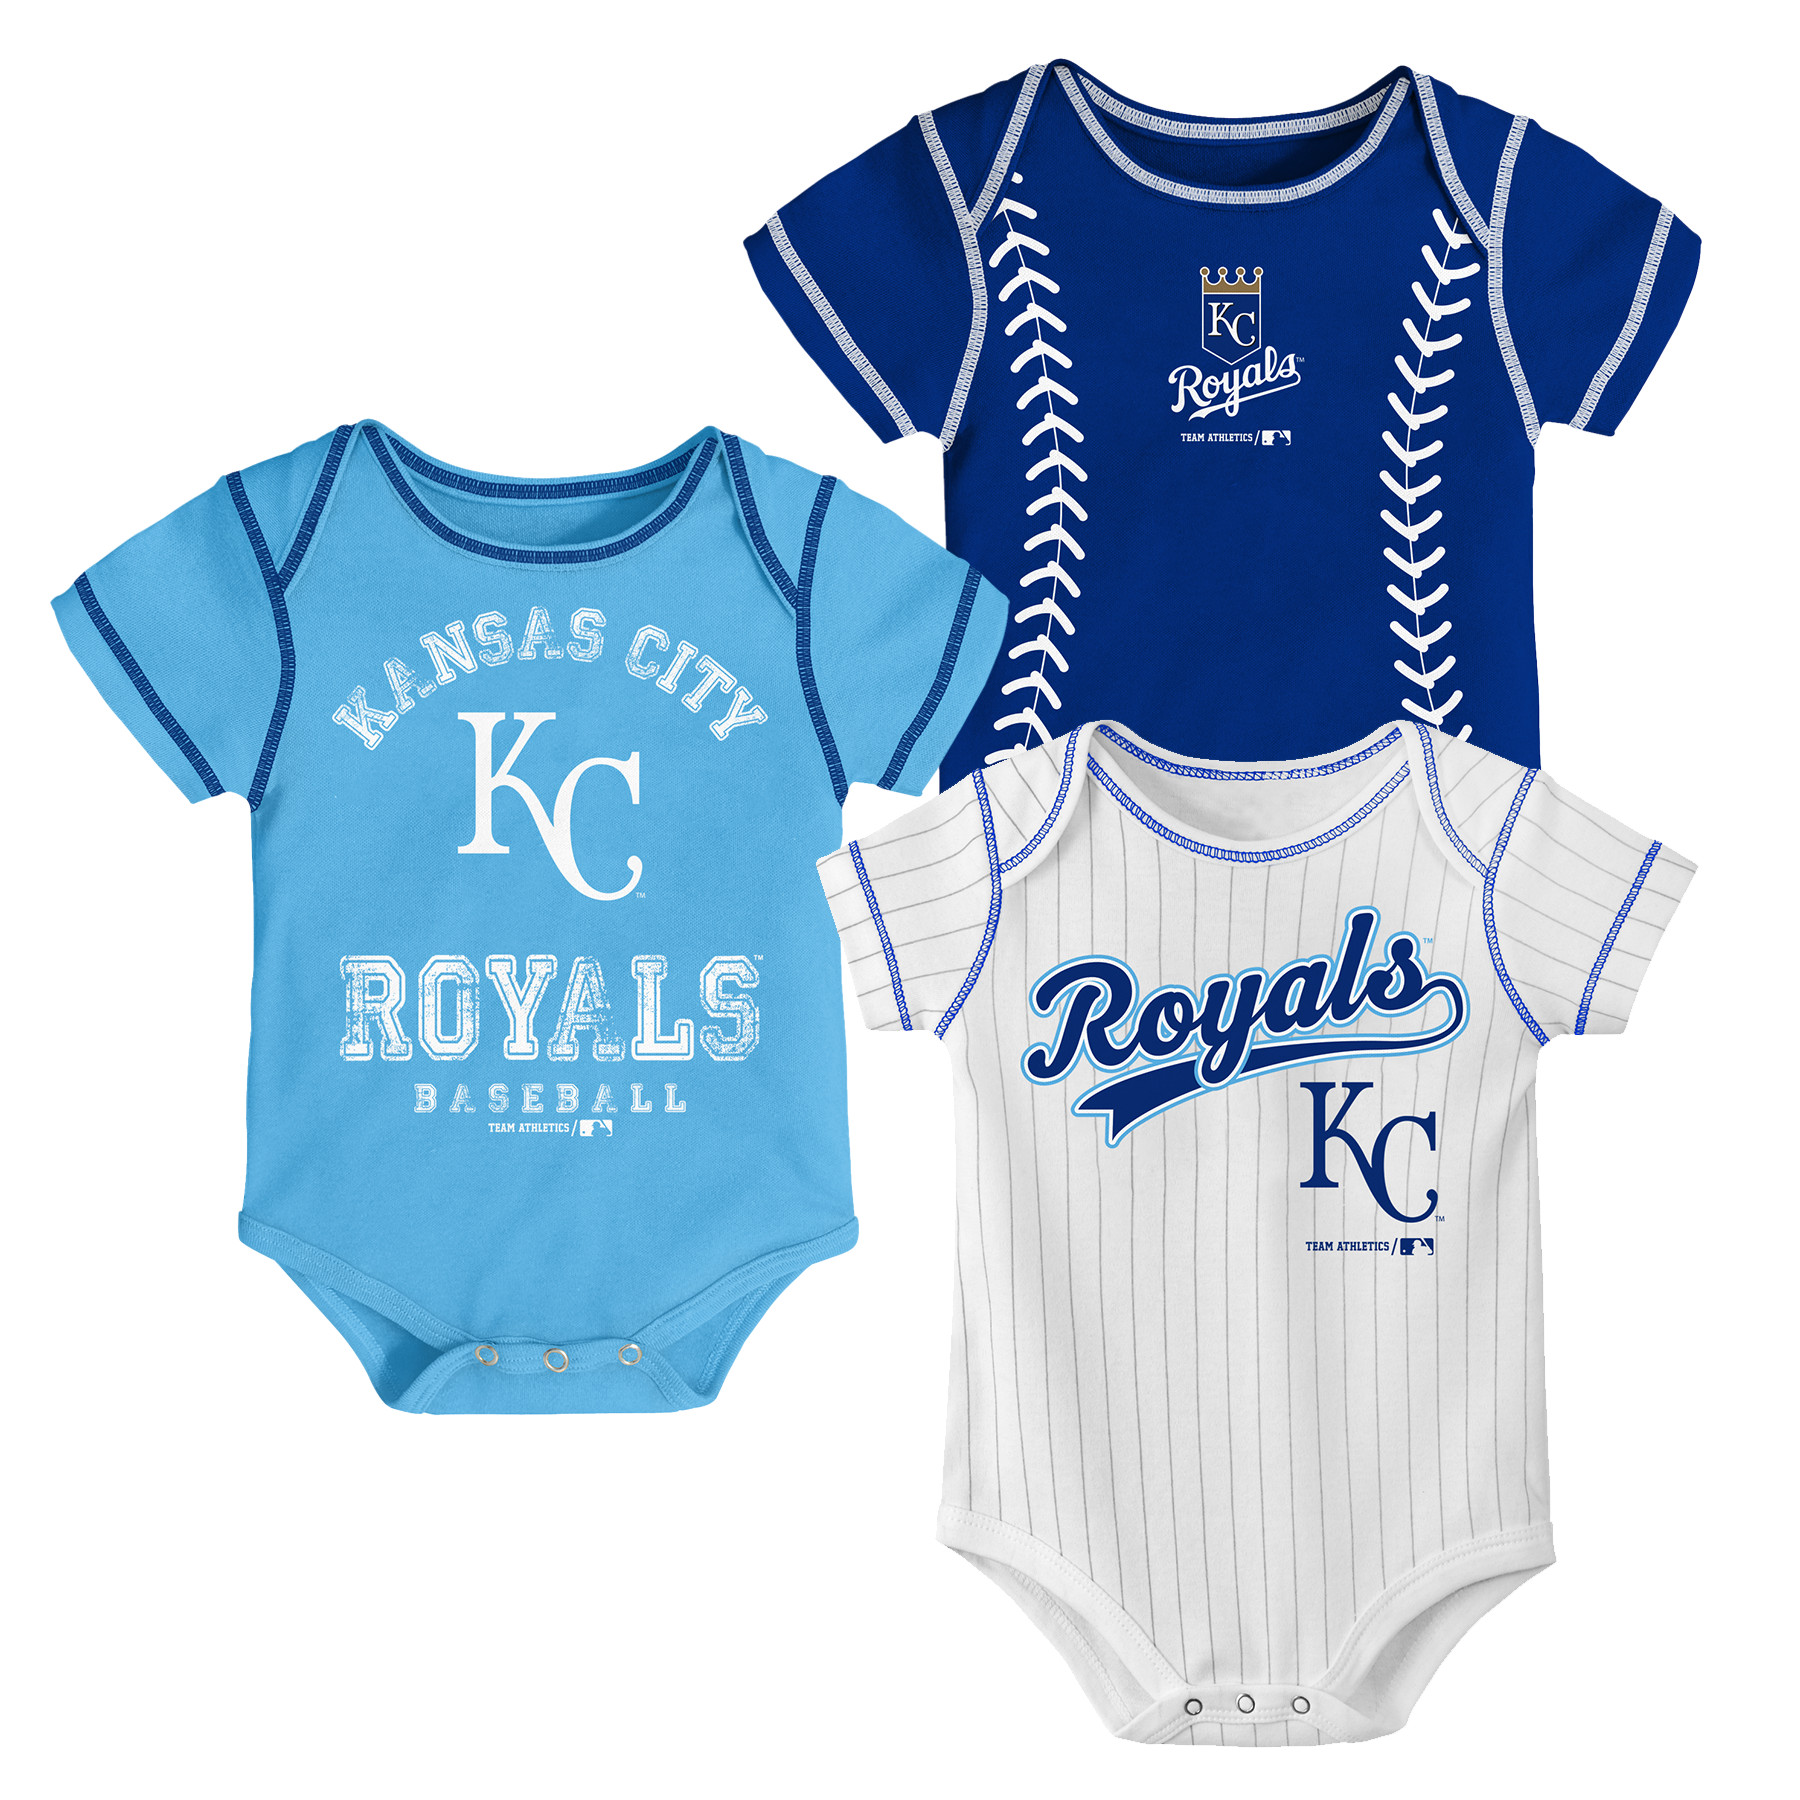 Kansas City Royals Baby Infant Footed Pajamas Bodysuit MLB Size 3-6 Months New